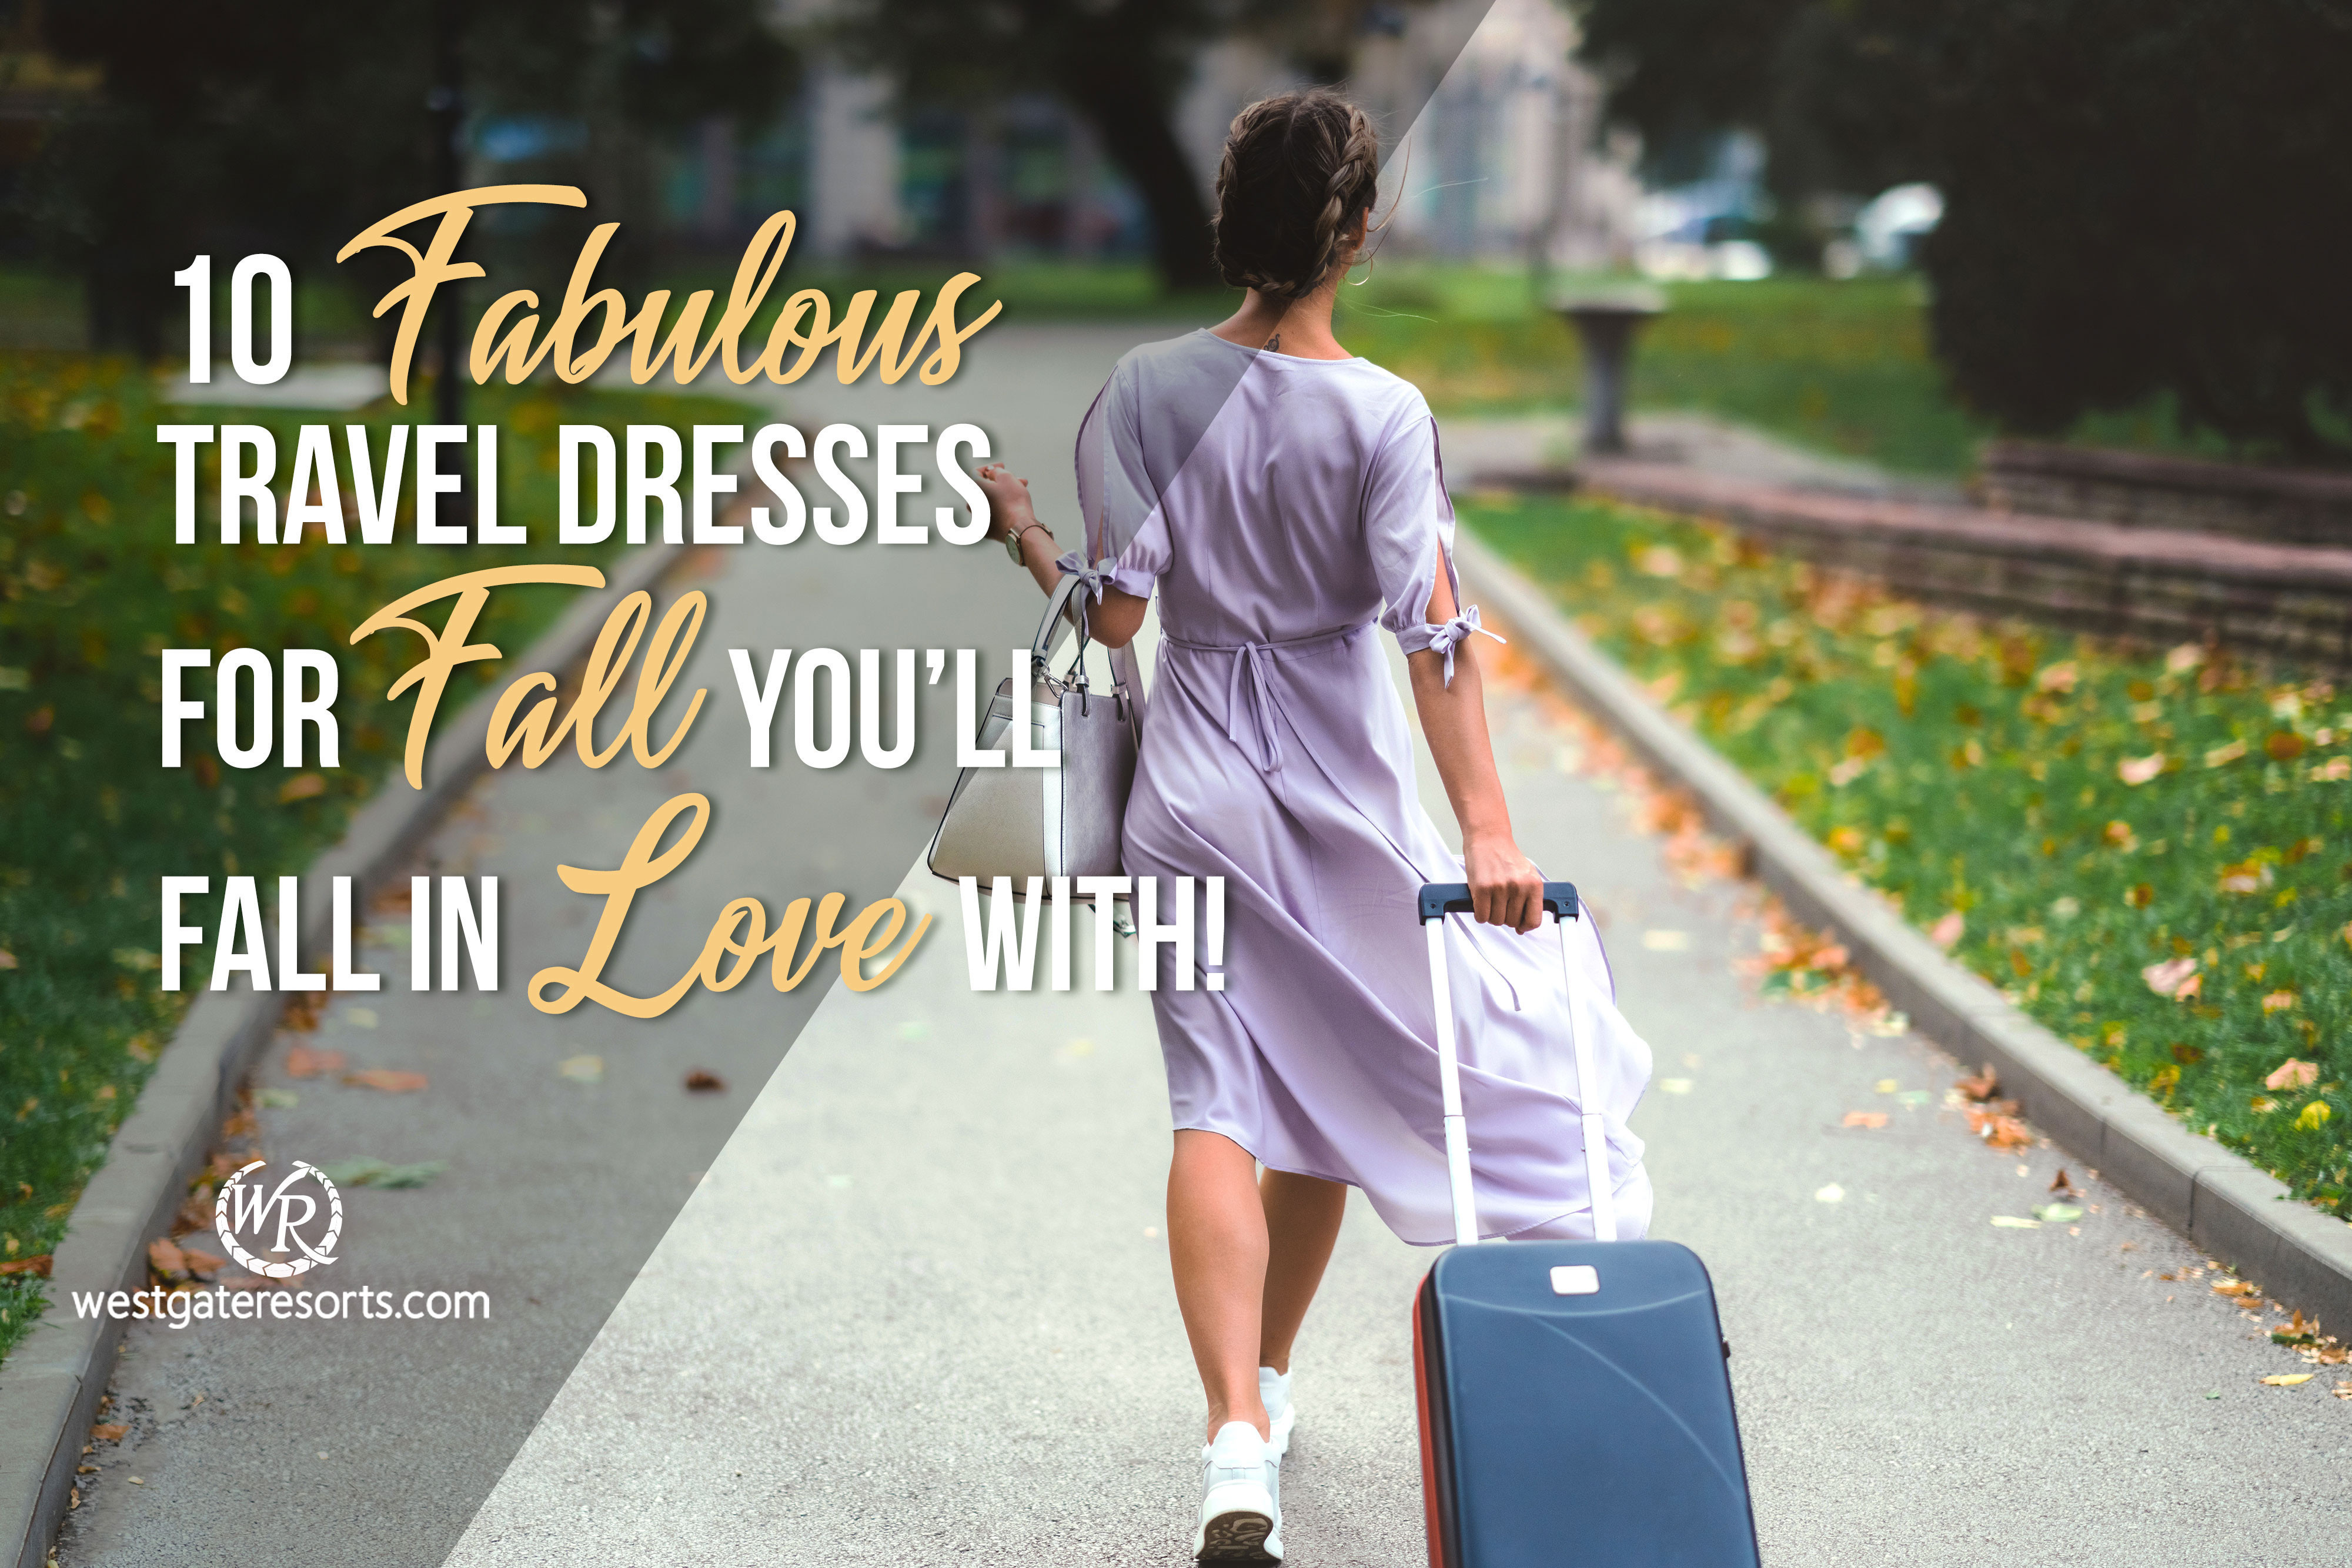 10 Fabulous Travel Dresses For Fall You'll Fall In Love With | Fall Travel Dresses